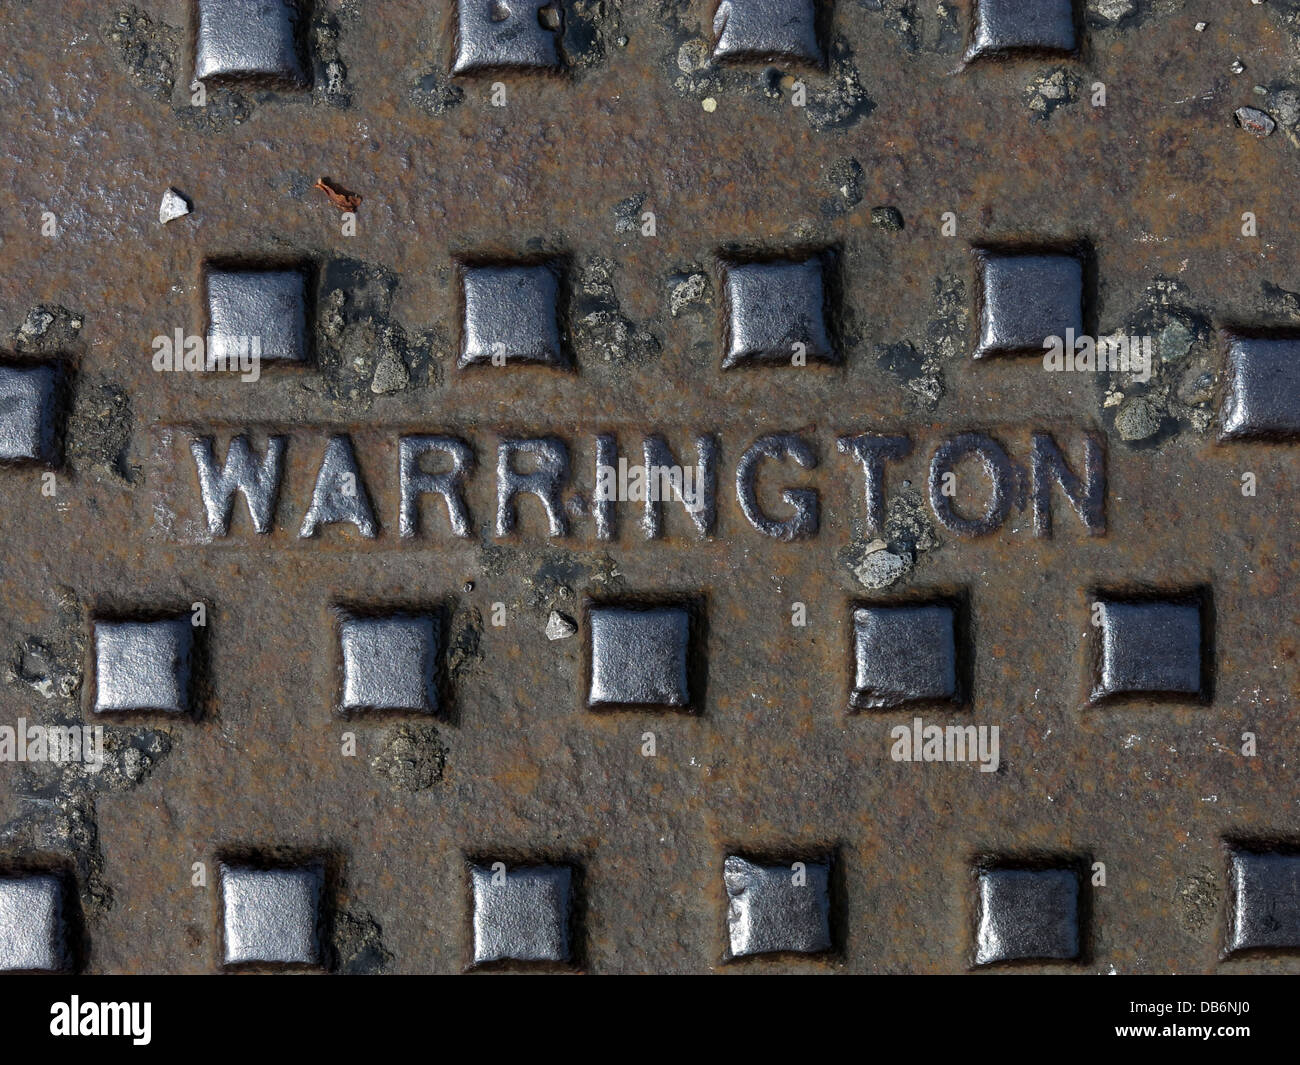 A Grid or man hole  marked with the name of Warrington Cheshire , England UK - Stock Image